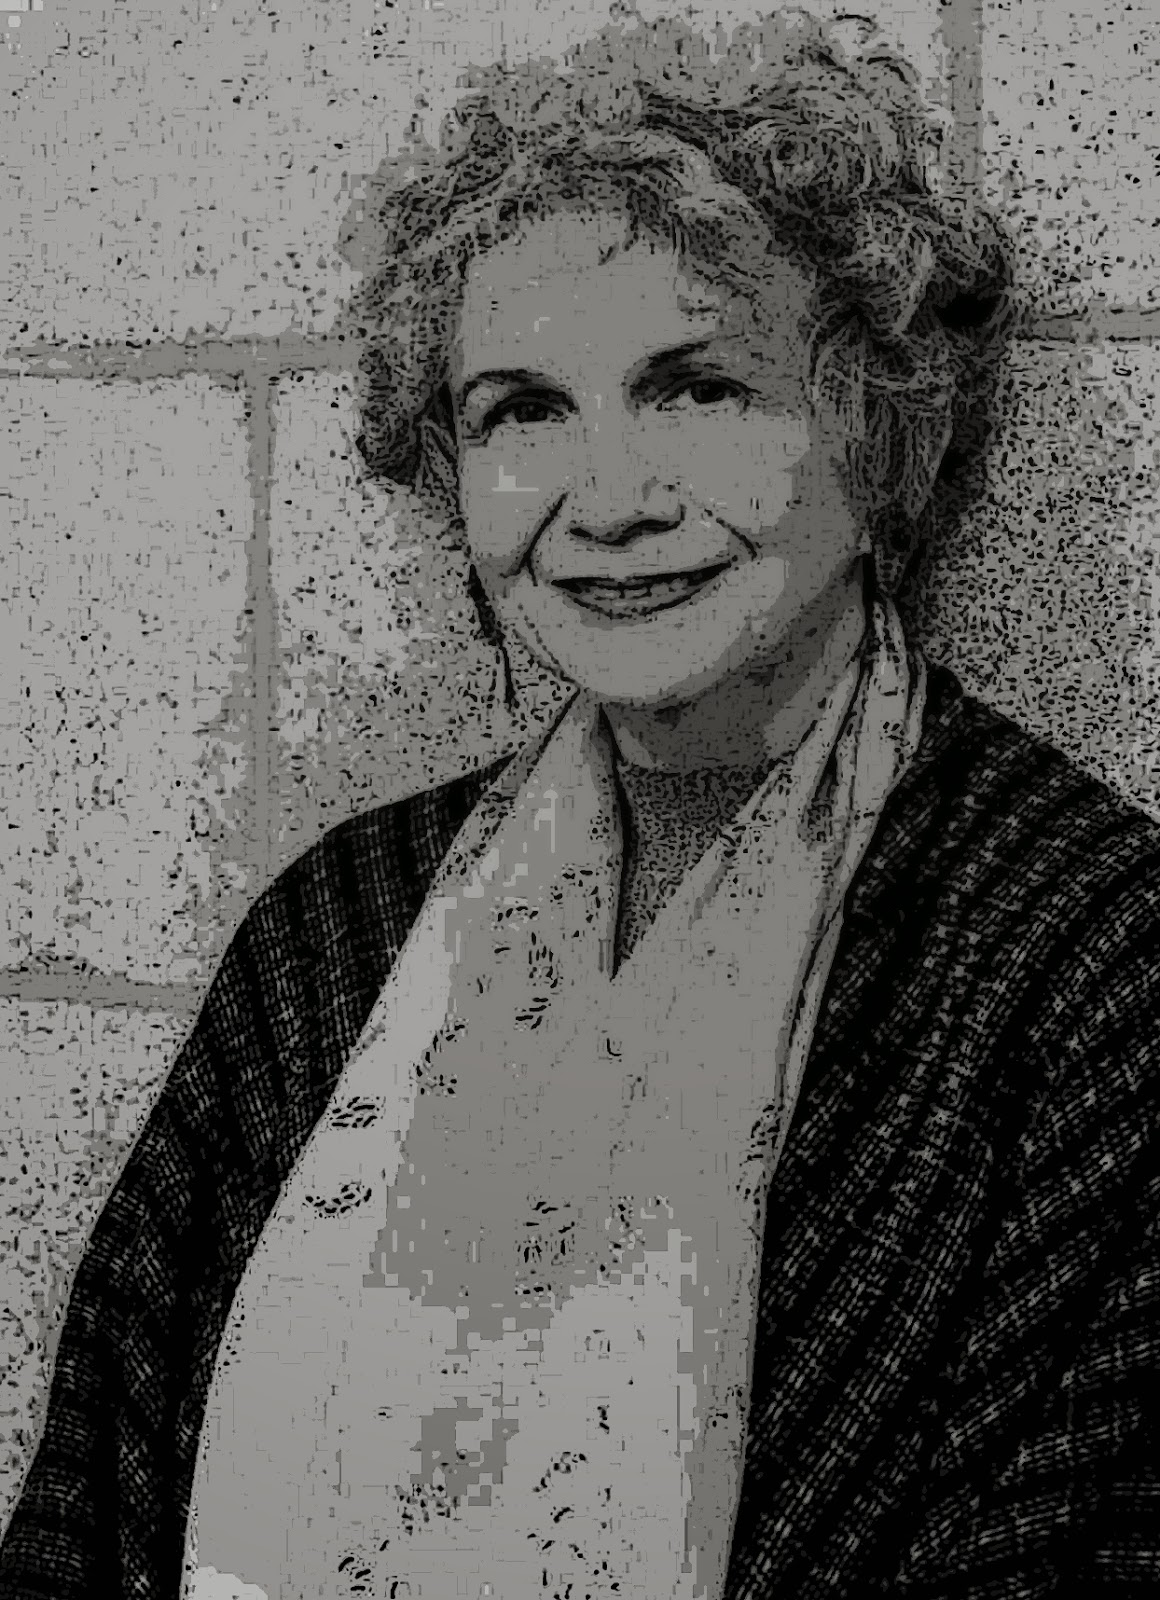 """alice critical essay munro rest story How did you first come to encounter the work of alice munro  render what she  once called """"the rest of the story"""" in her situations  reading alice munro, 1973- 2013 is a contextualized selection of my own critical essays."""